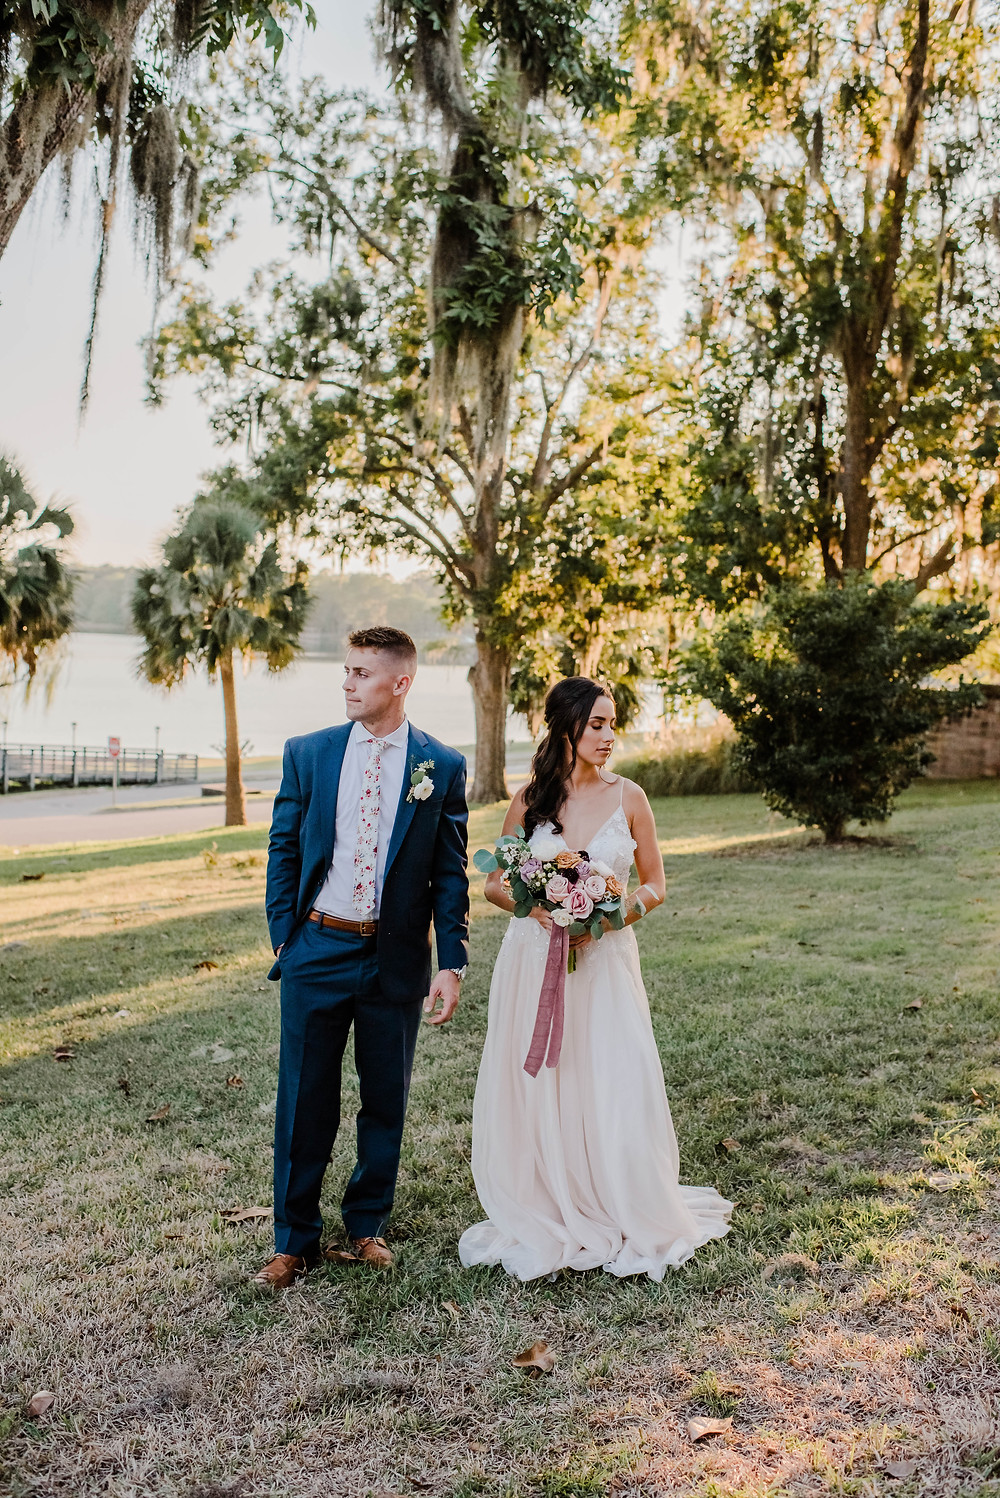 Elopement Packages Near Me